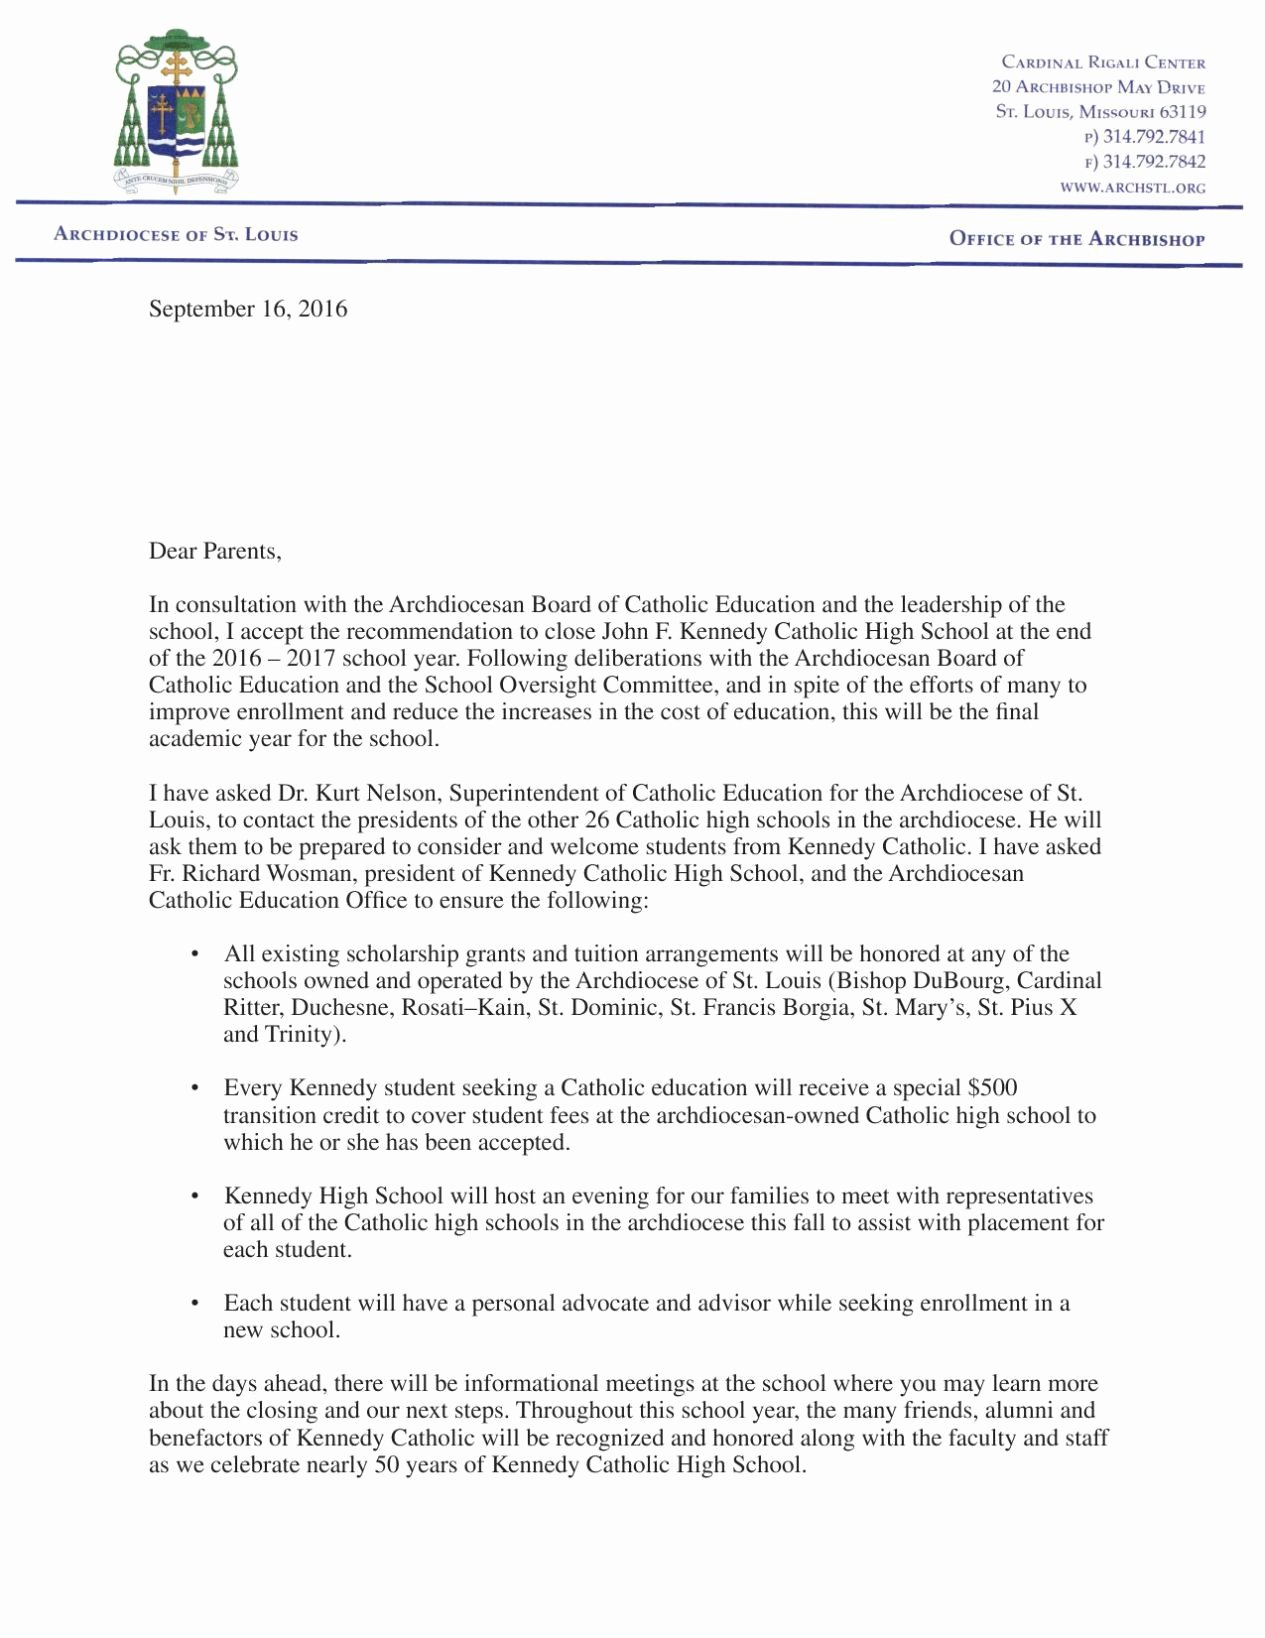 Alumni Letter Of Recommendation Best Of College Letter Of Re Mendation From Alumni thevillas